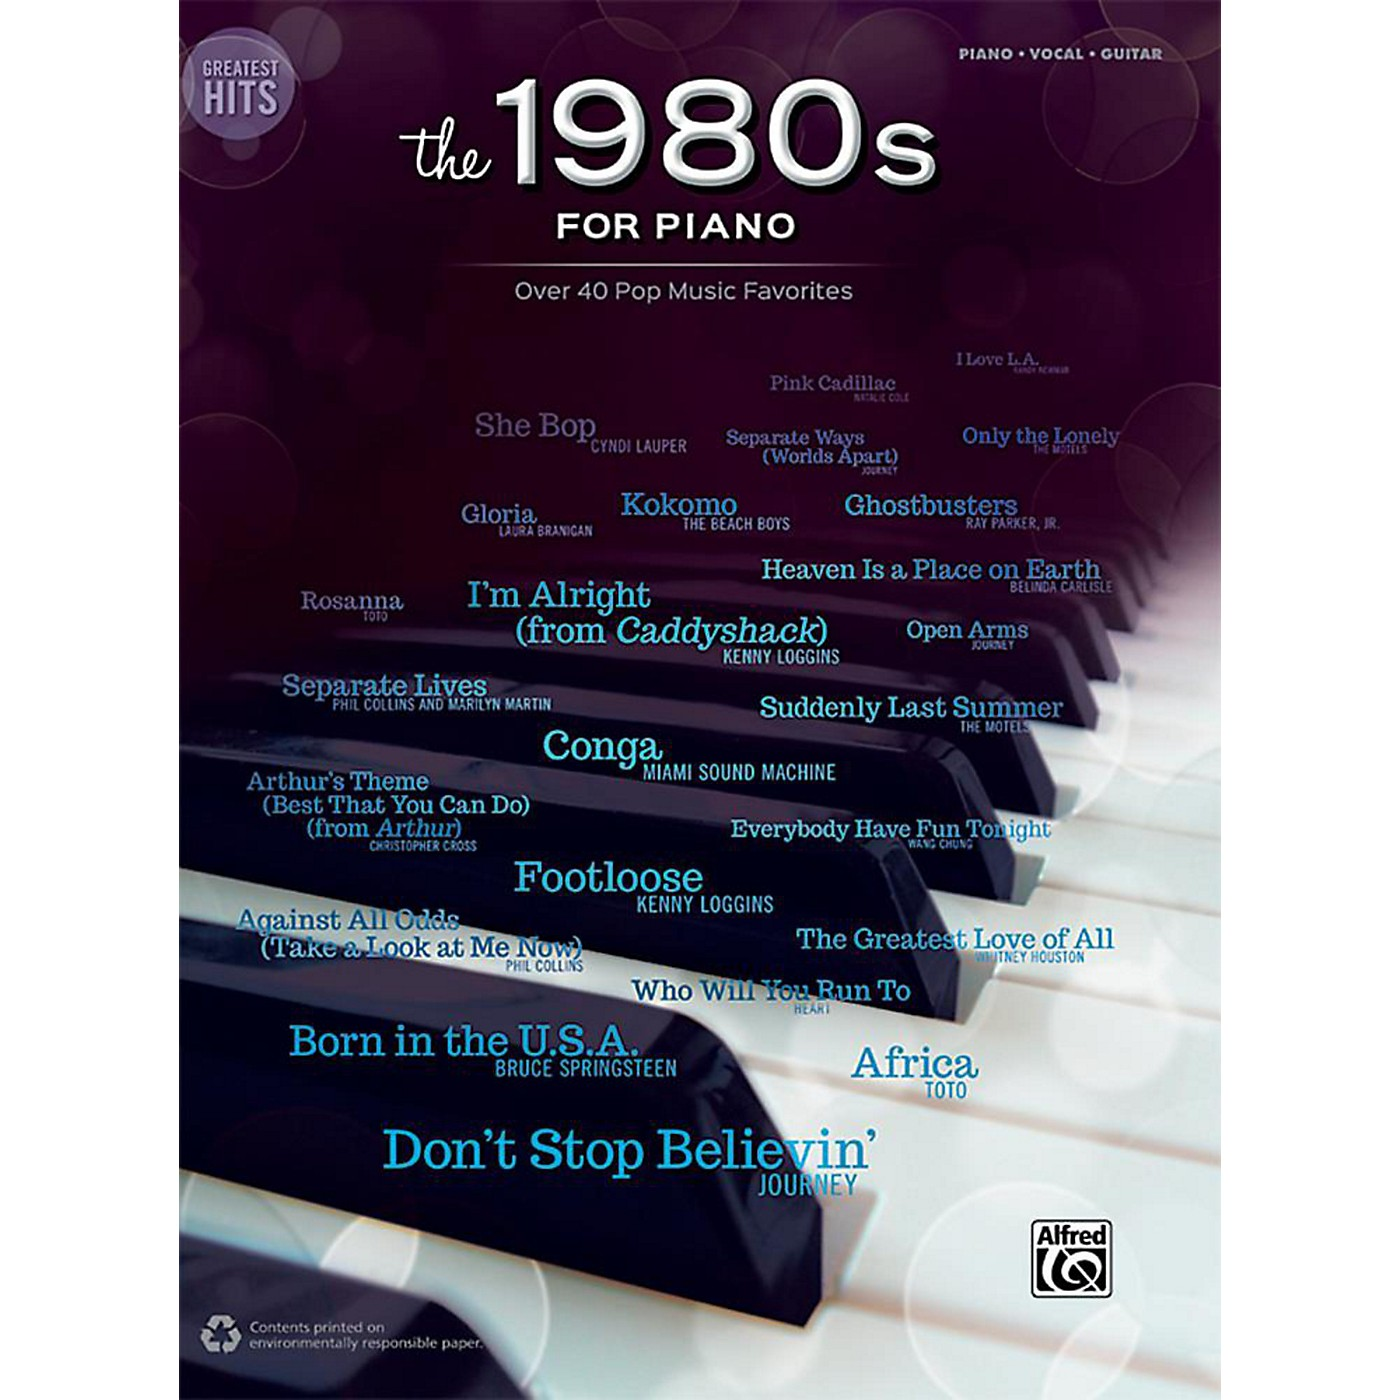 Alfred Greatest Hits: The 1980s for Piano - Piano/Vocal/Guitar Songbook thumbnail